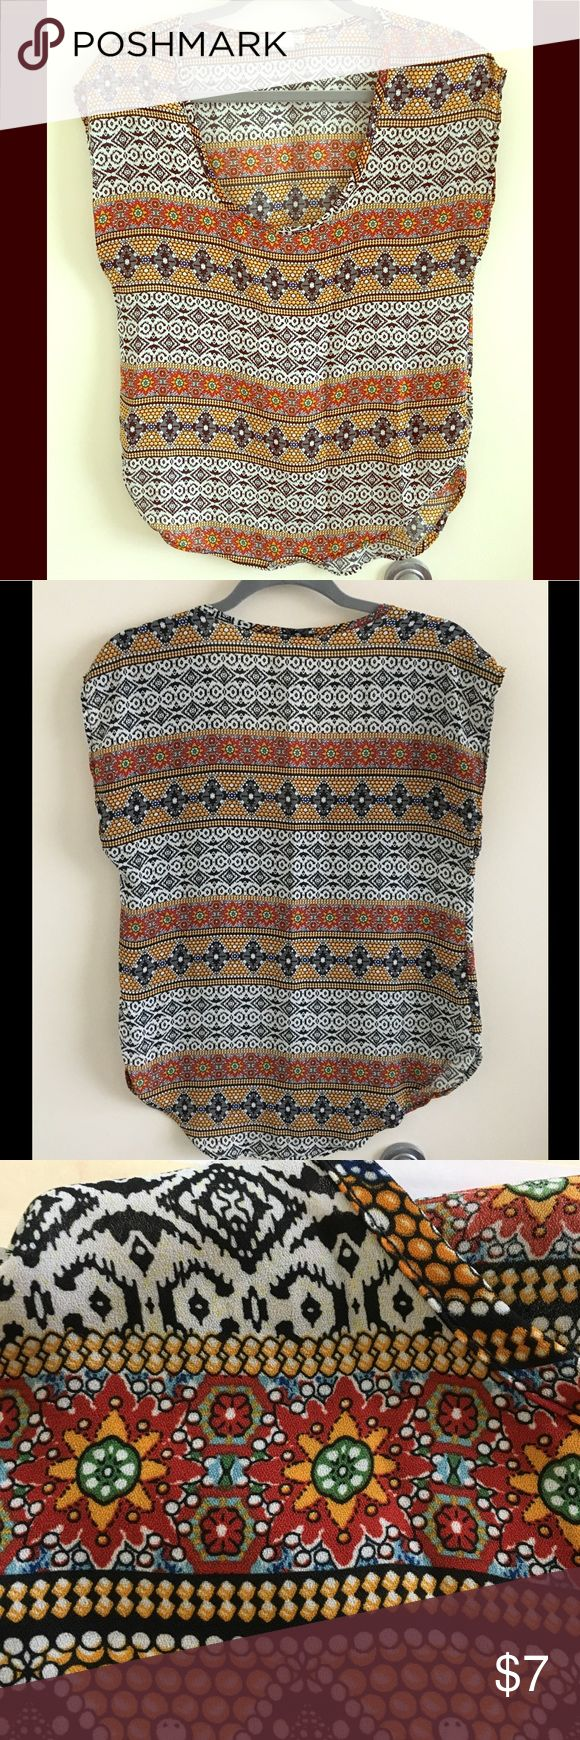 """Body Central Shirt Body Central short sleeve bohemian design shirt. Good condition- Approx. 26"""" Size: SM Body Central Tops Tees - Short Sleeve"""